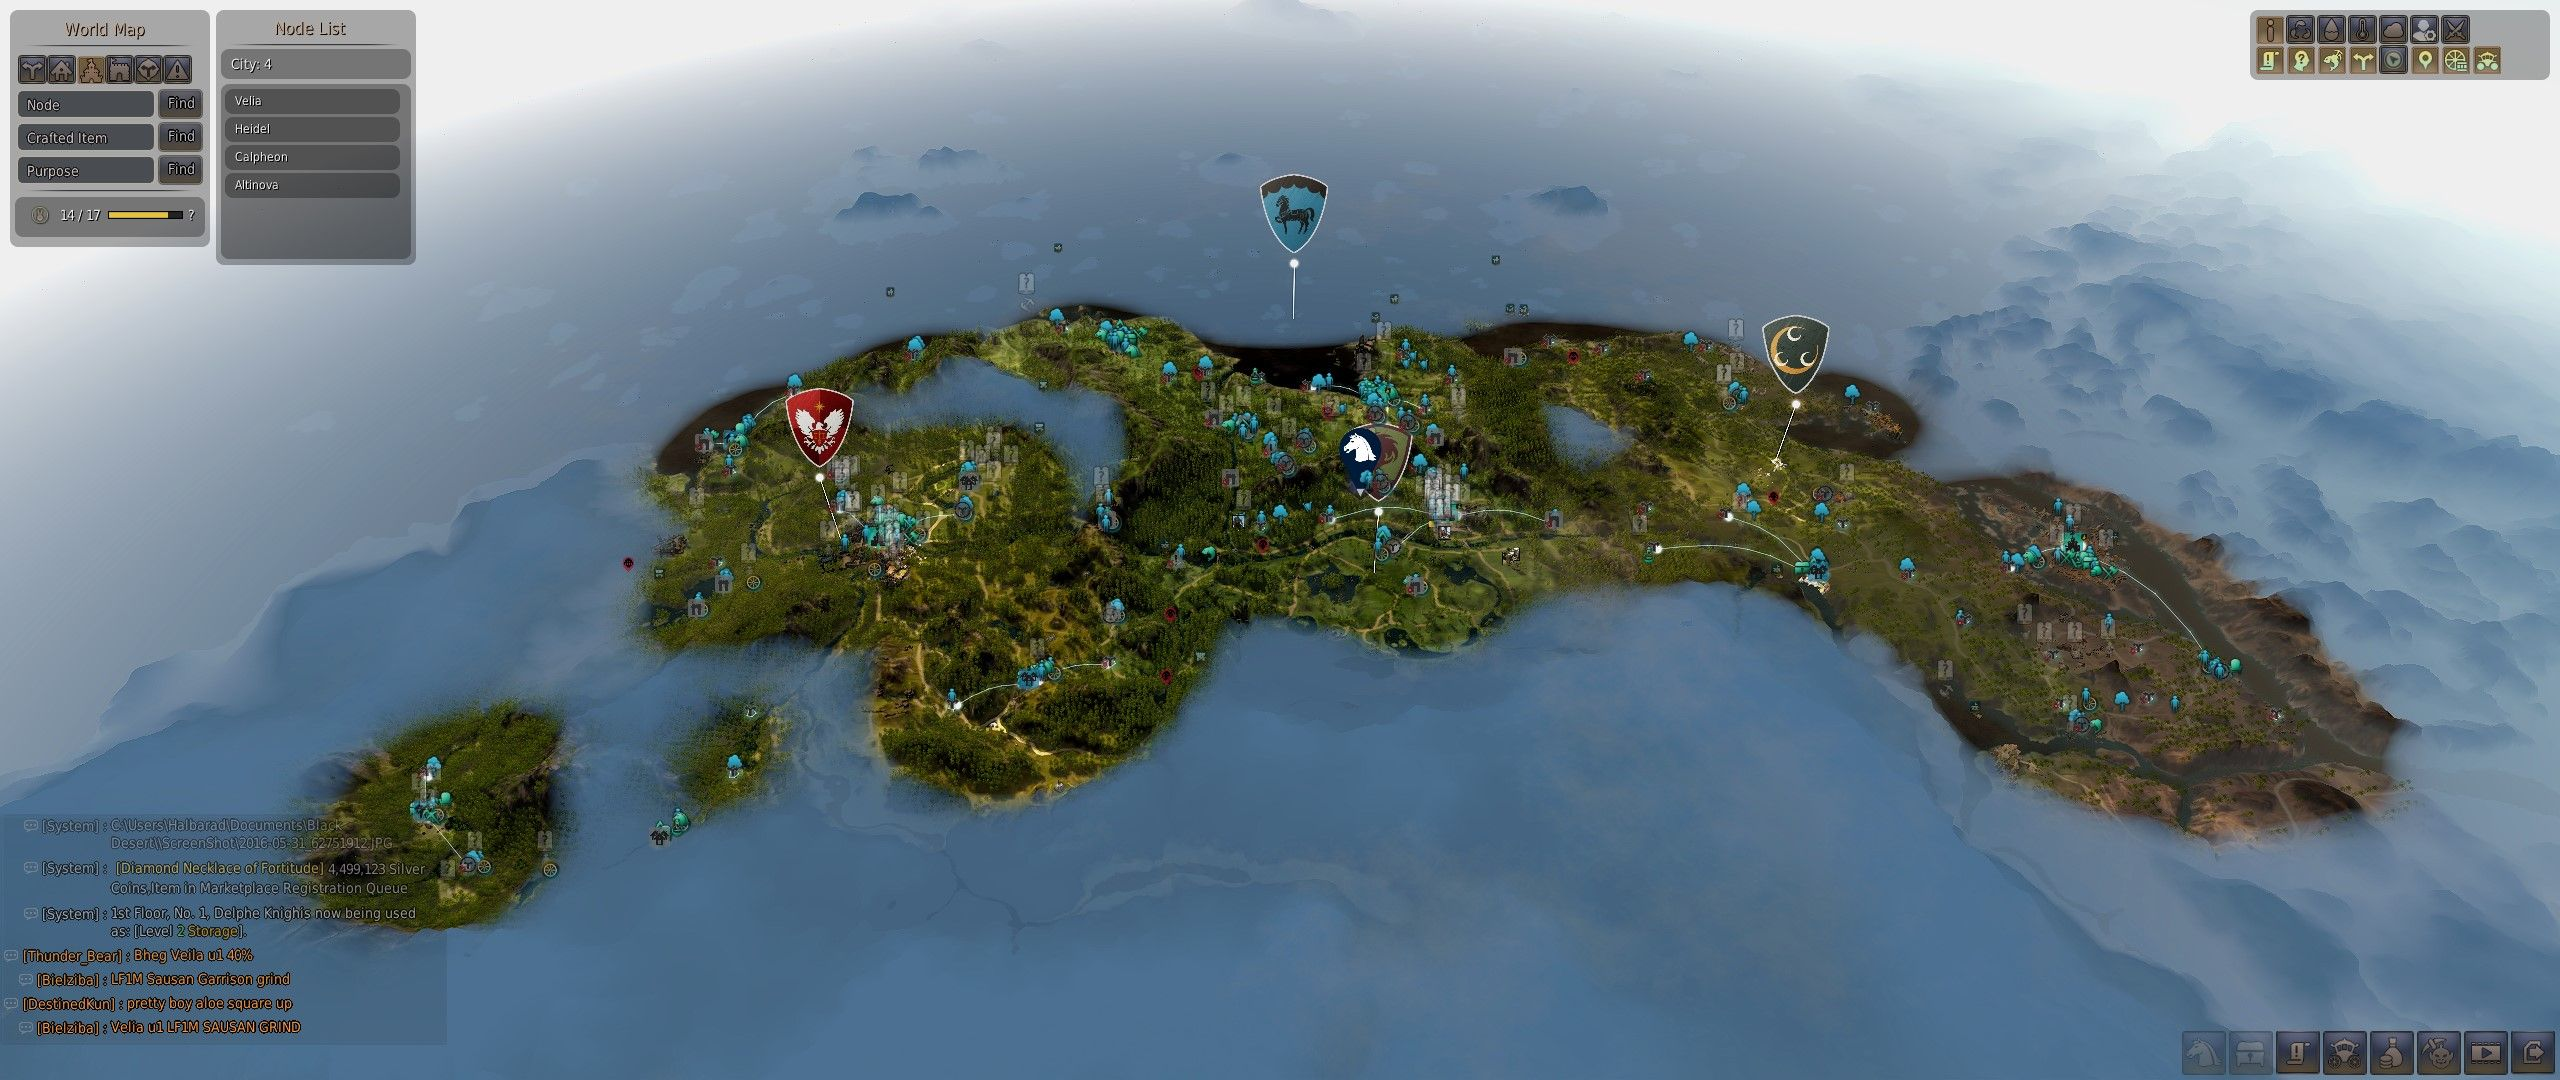 Black desert online review the power of great updates black desert online 02 world map gumiabroncs Choice Image